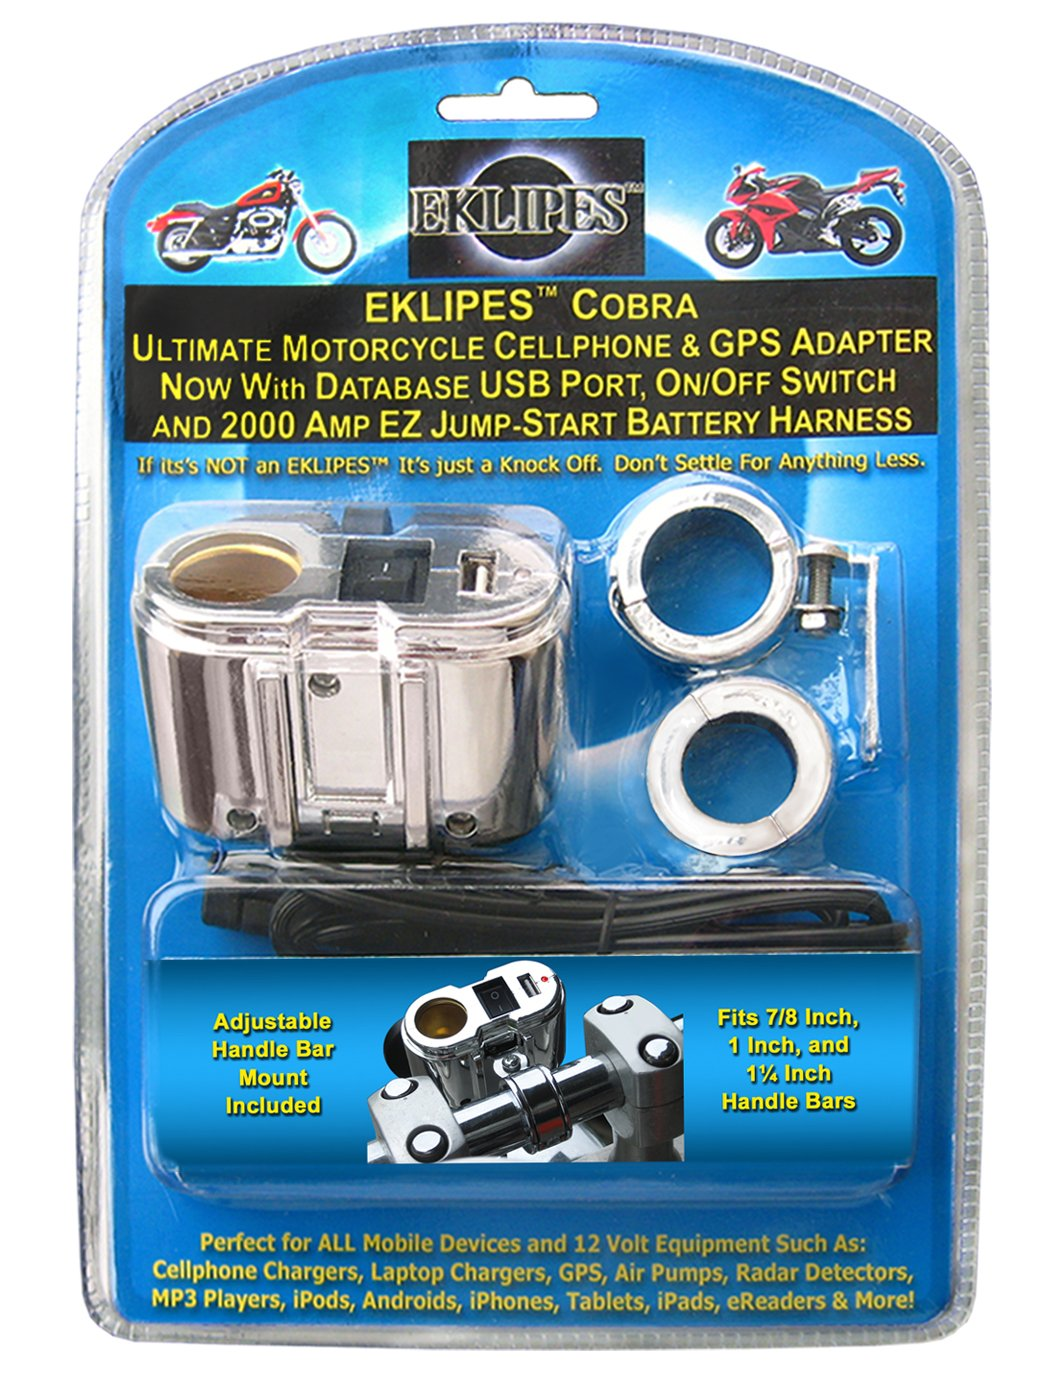 EKLIPES EK1-115 Black Universal Bike-2-Bike Jump Start Kit and EK1-110 Chrome Cobra Ultimate Motorcycle USB Charging System Bundle